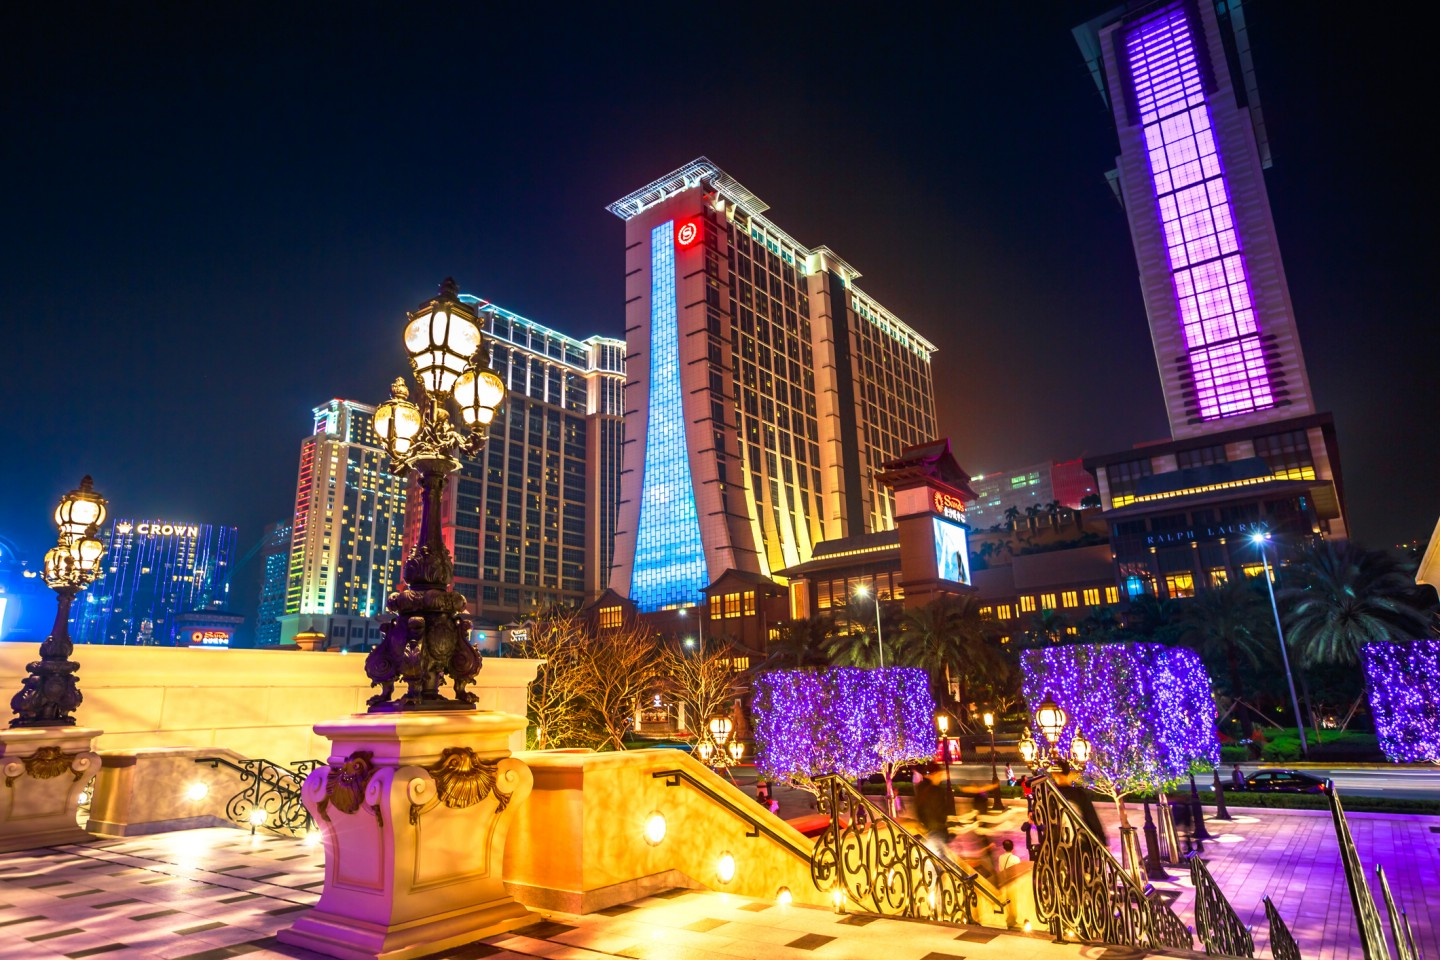 The Individual Visit Scheme allows Mainlanders to visit Hong Kong on a travel basis. As a result, masses of gamblers from the Mainland flocked to Macau, suffocating the local people to the point of exasperation and forcing them to demand complete localisation of their SAR. (iStock)